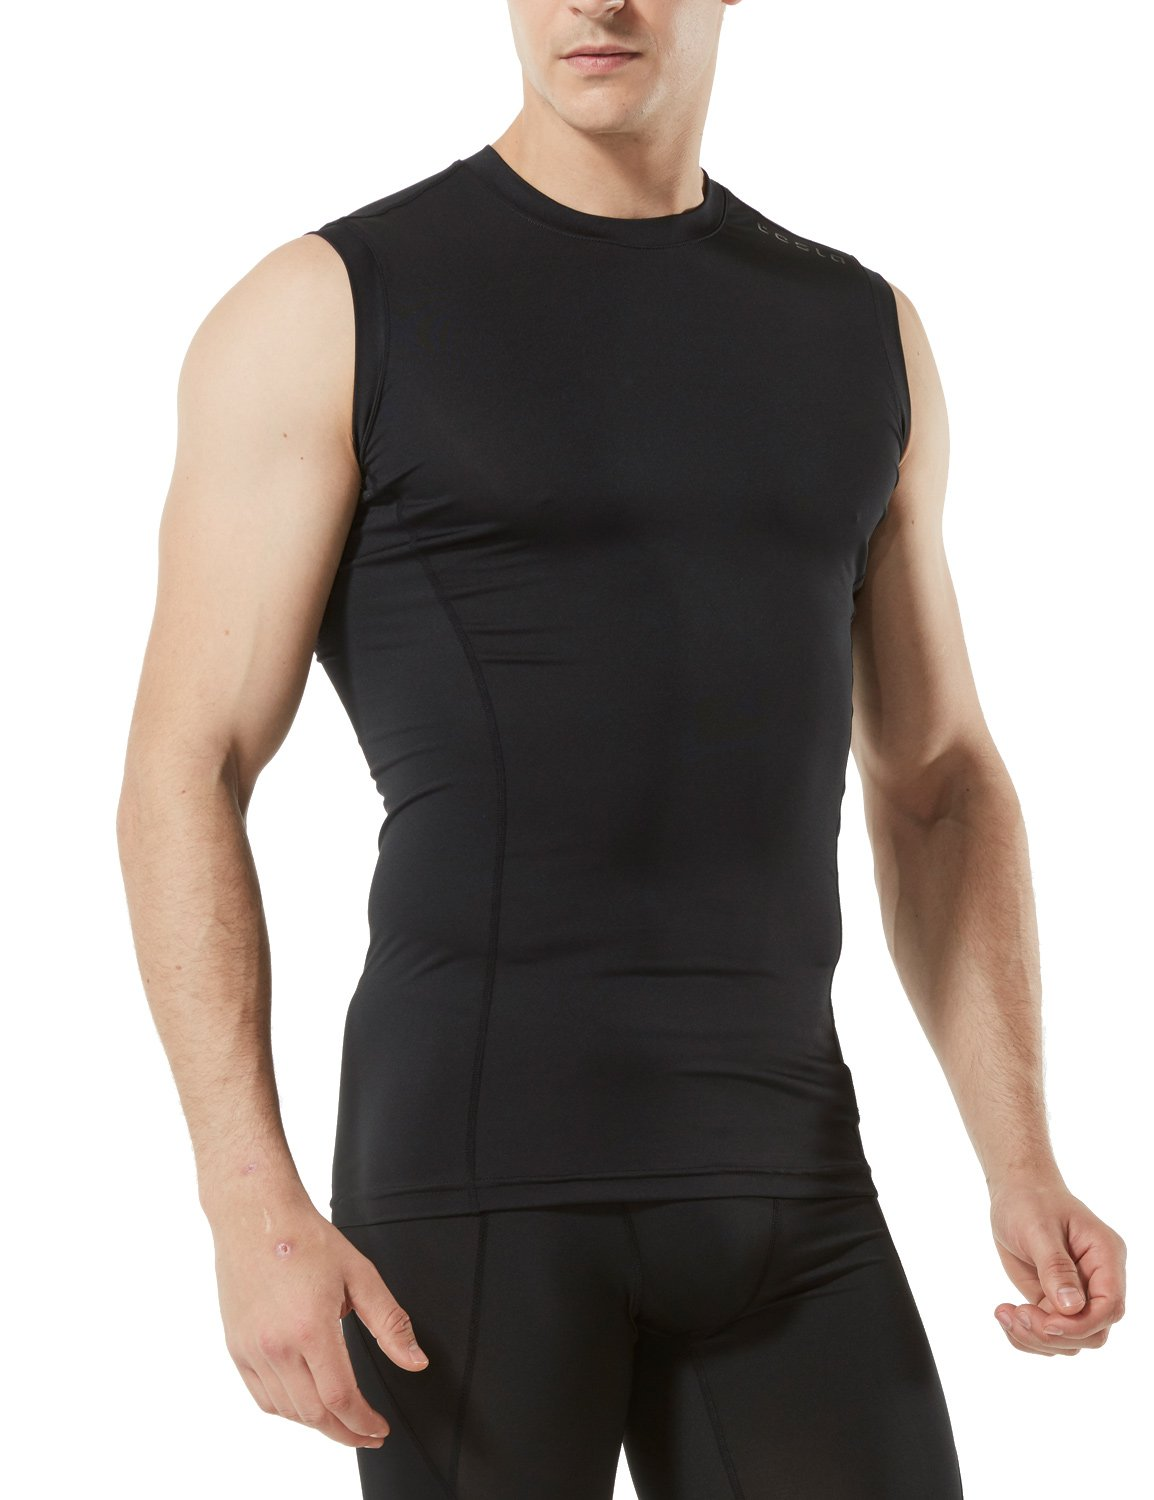 R Neck Compression Shirt for men